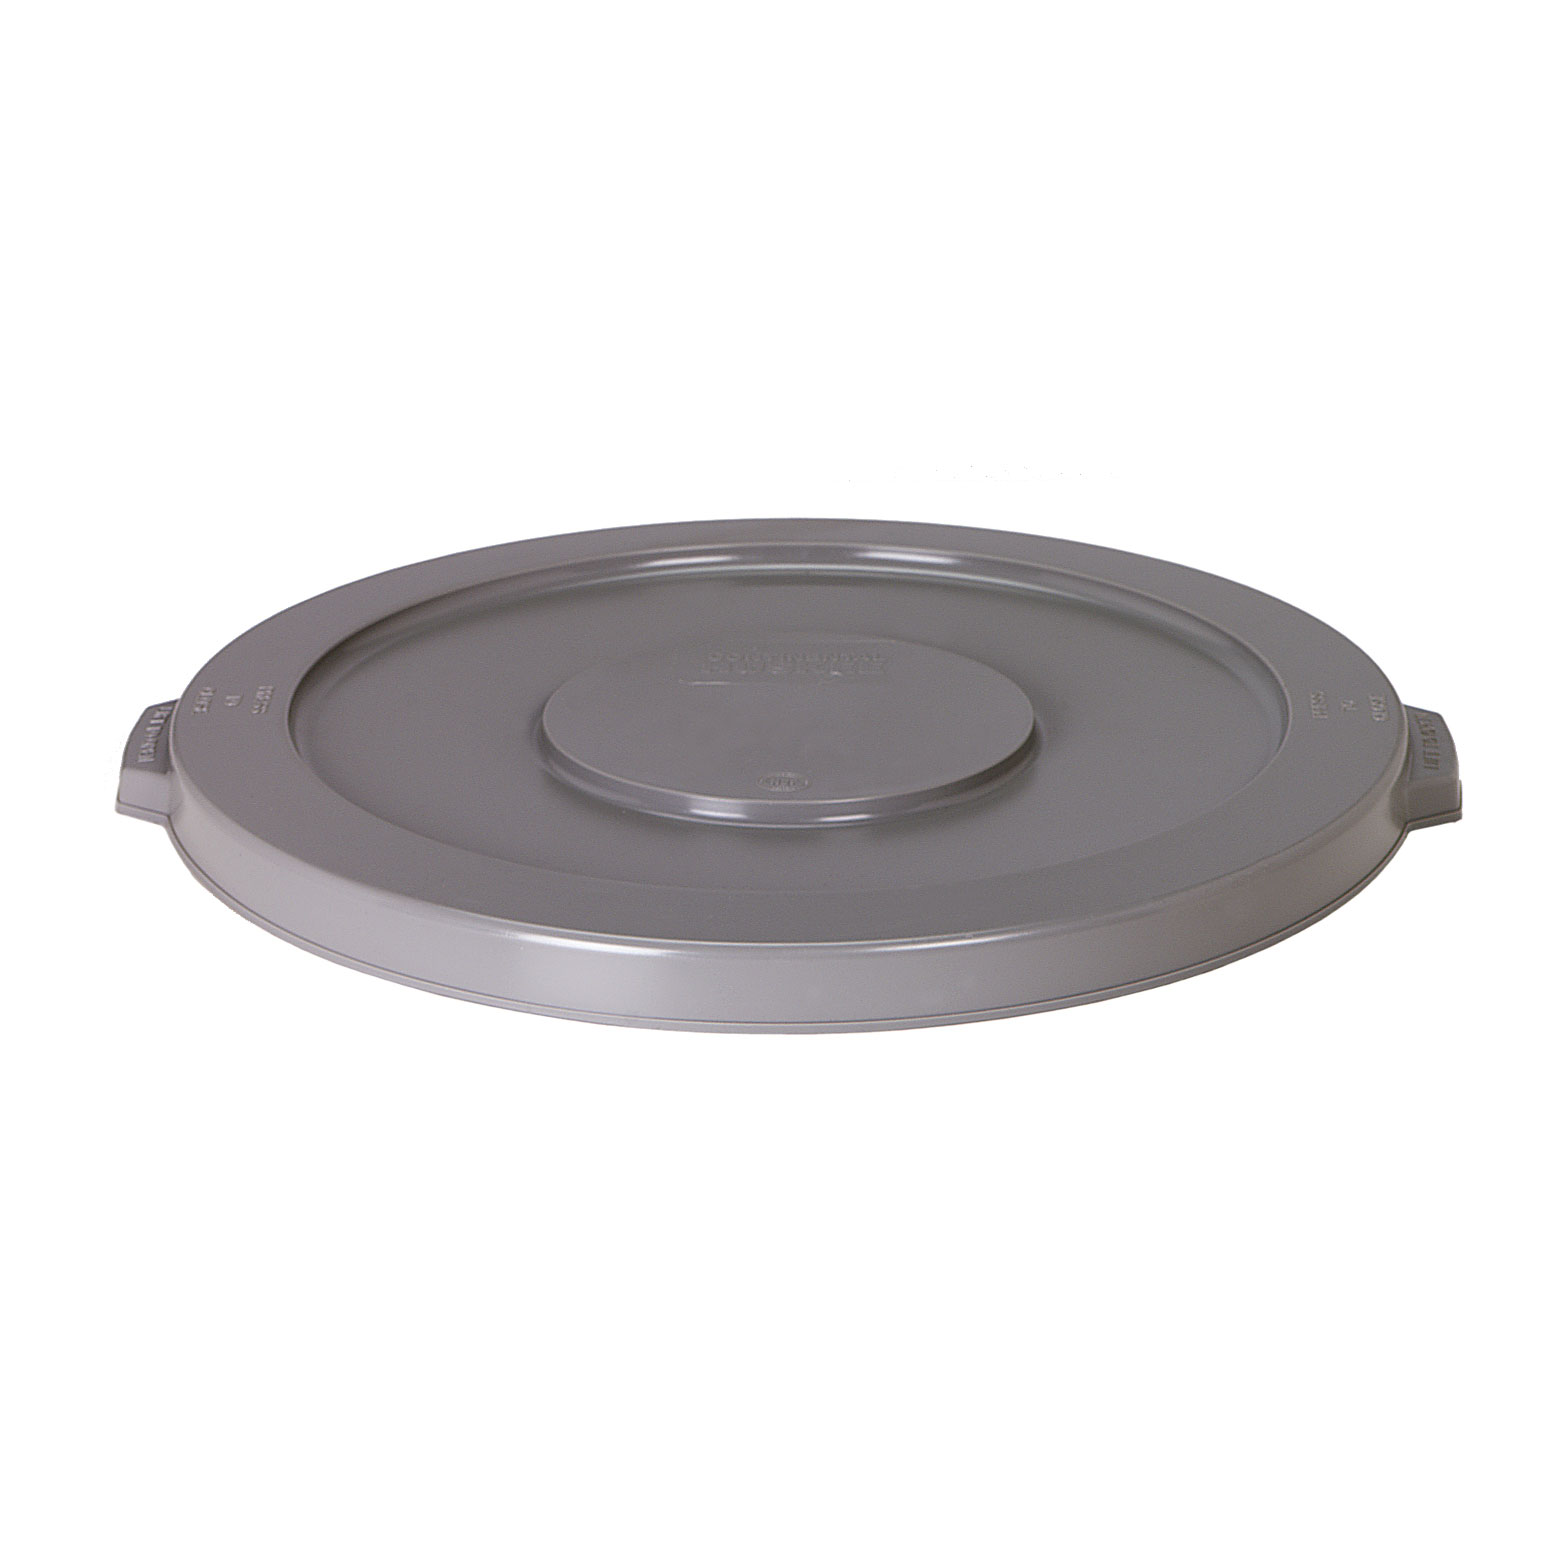 Royal Industries CCP 4445GY trash receptacle lid / top